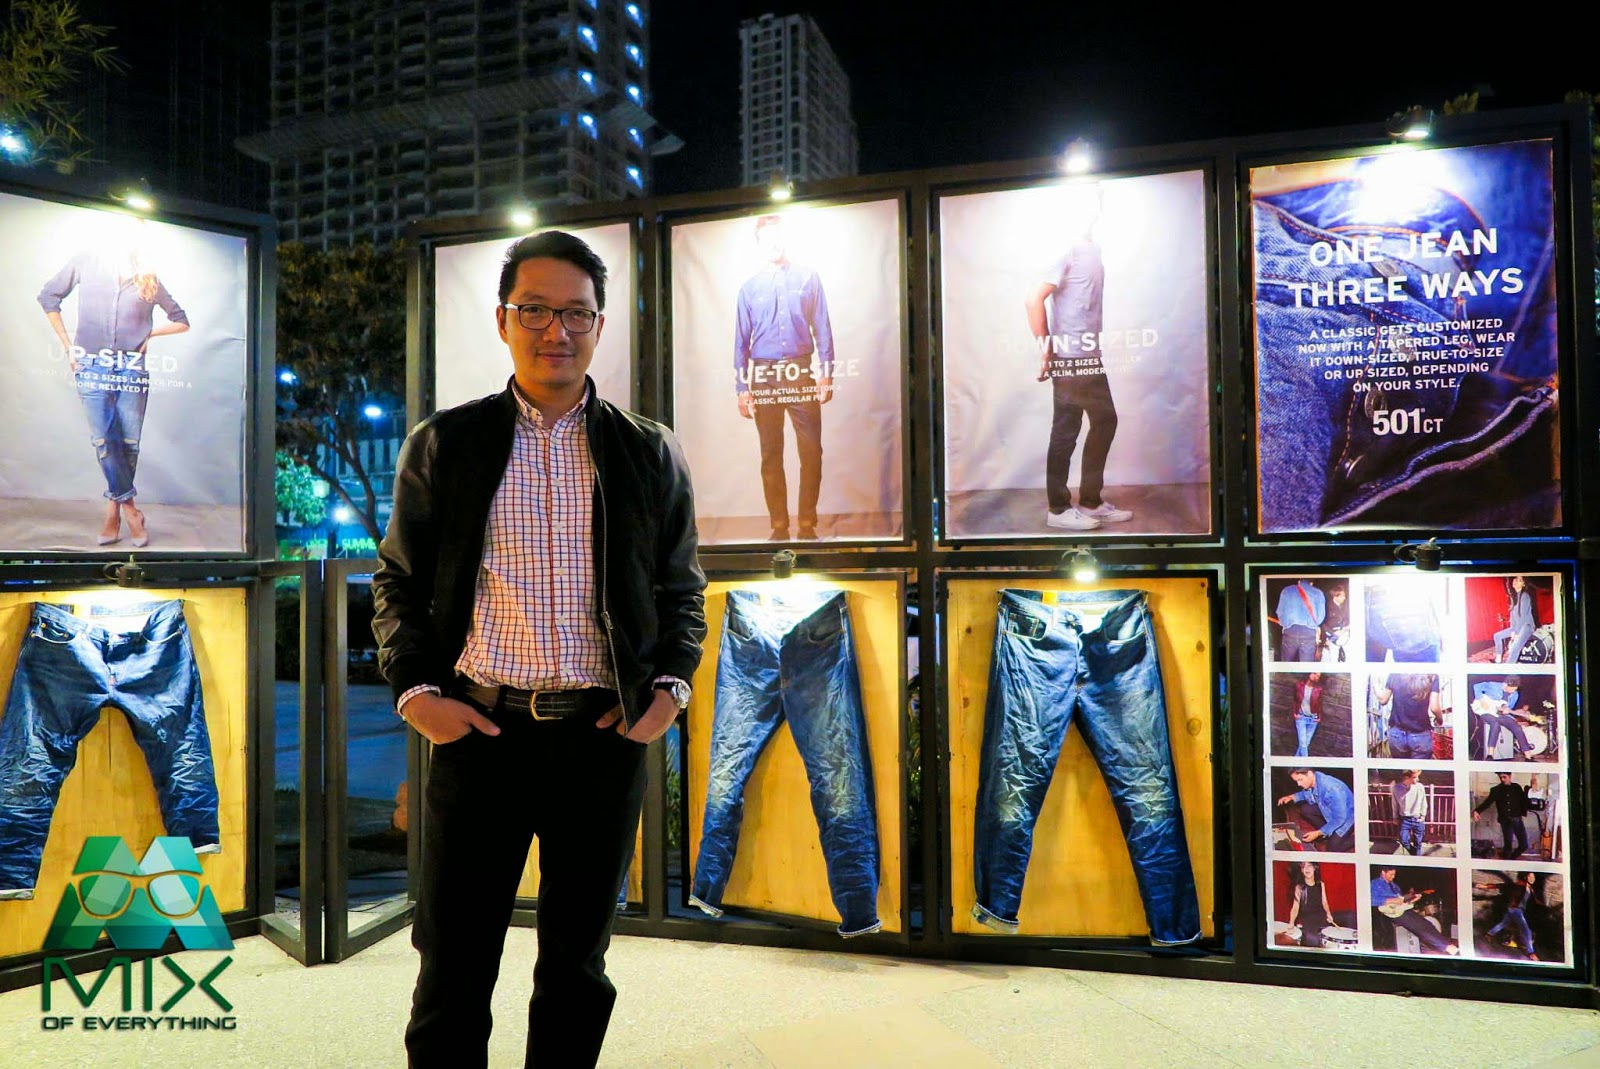 3db5b0b6635 Levi's has recently launched its new jean series, the 501 CT at Valkyrie,  The Palace in BGC last February 11, 2015. The 501 CT is a reinvention of the  much ...